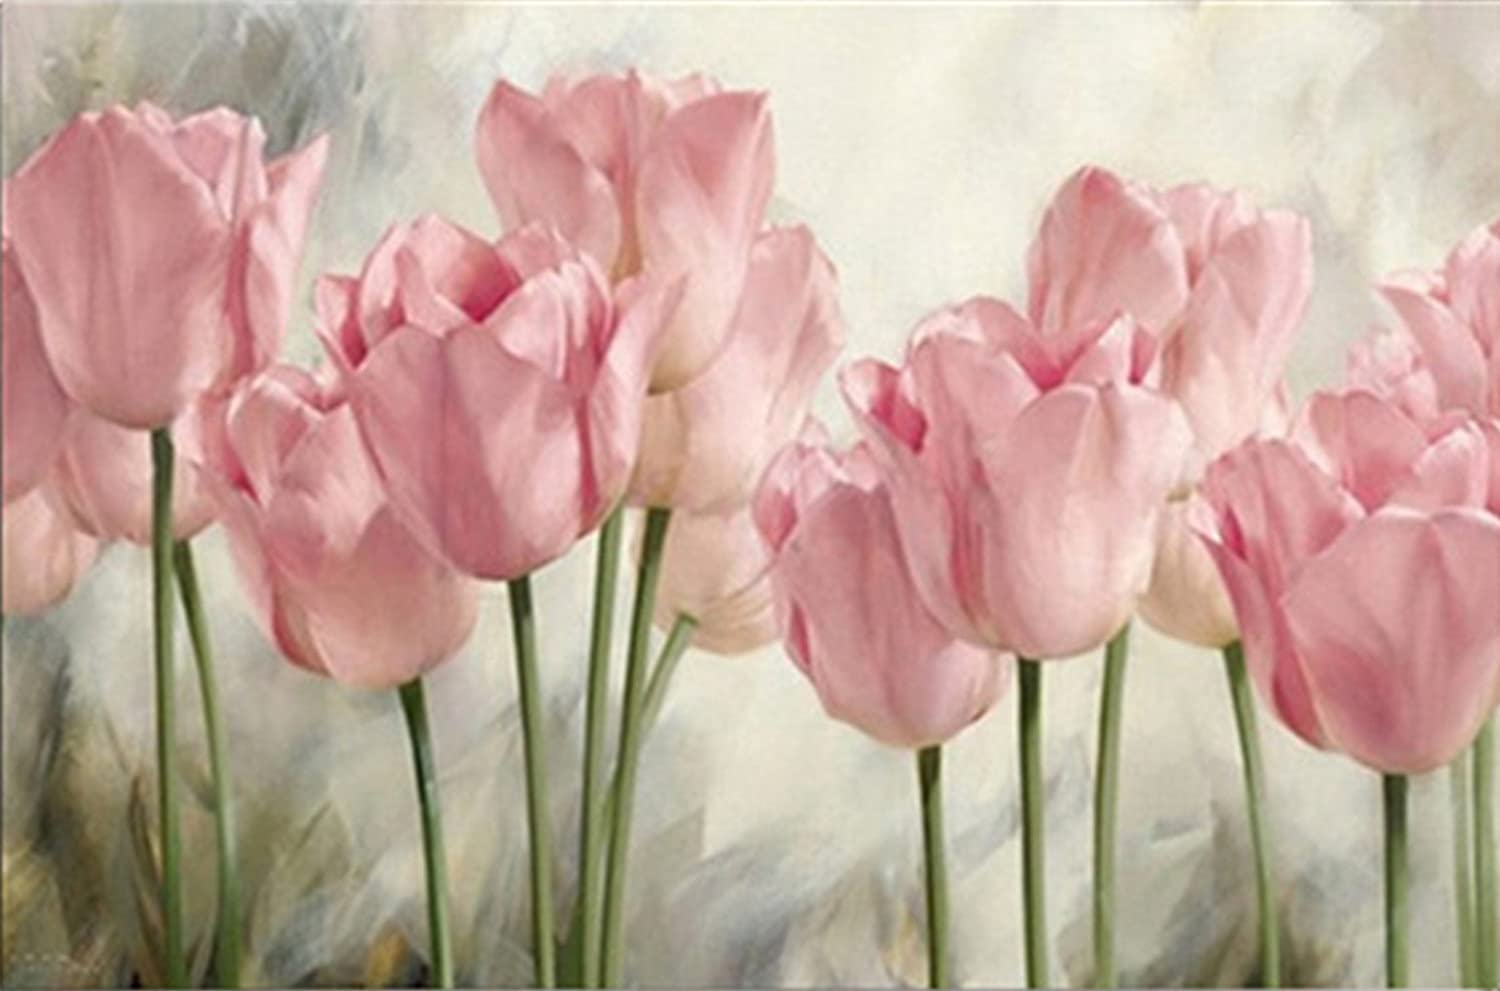 eGoodn Diamond Painting Full Drill Kit DIY Cross Stitch by Number Kit Wall Decor Art, Flower Series Pink Tulips, No Frame (50x35cm)